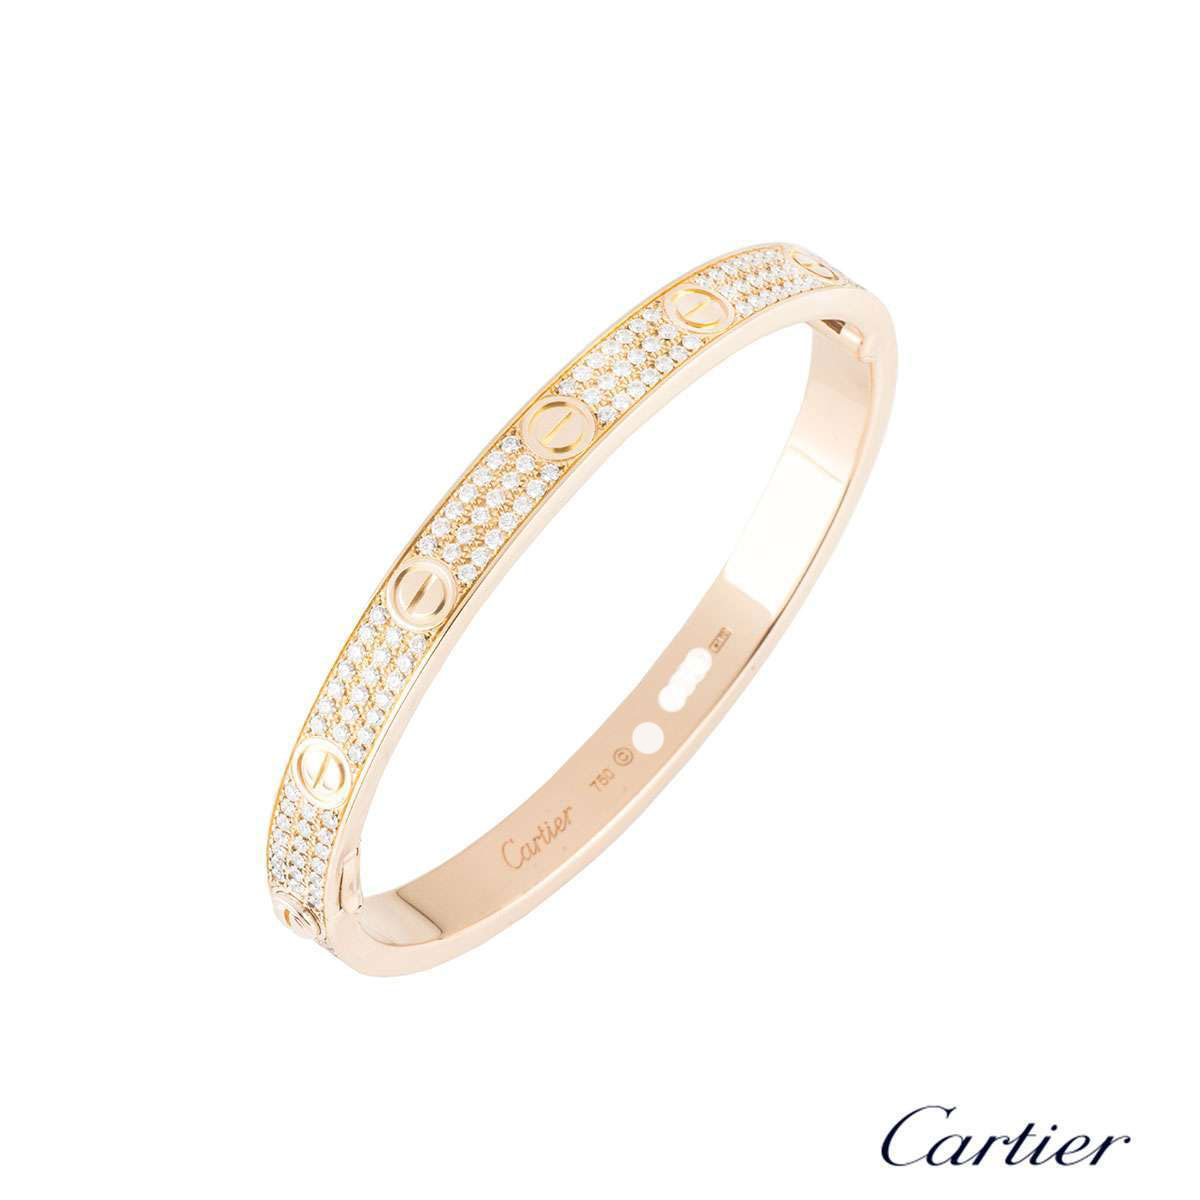 Cartier Rose Gold Pave Diamond Love Bracelet Size 17 N6036917